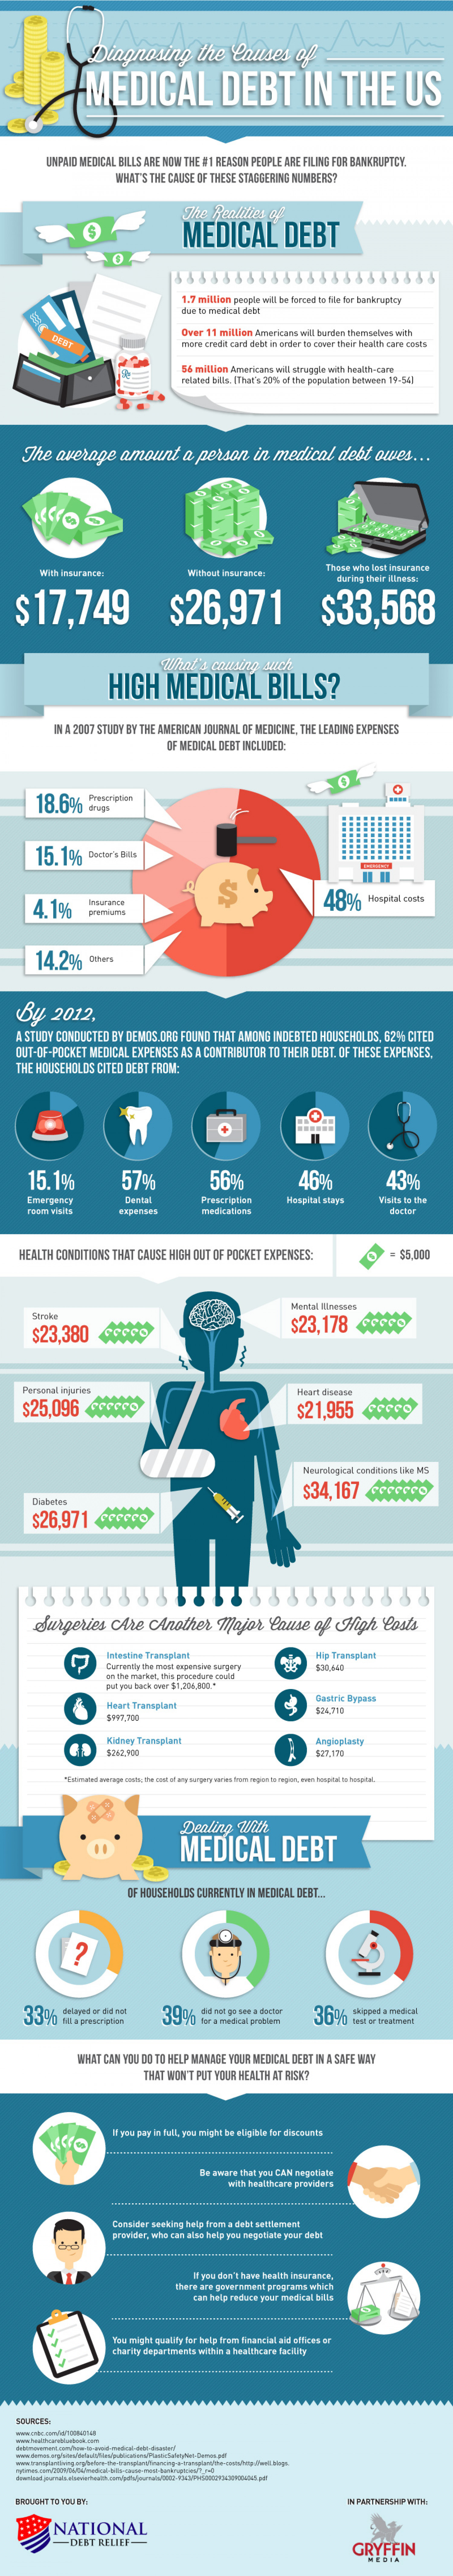 Diagnosing the Causes of Medical Debt in the US Infographic